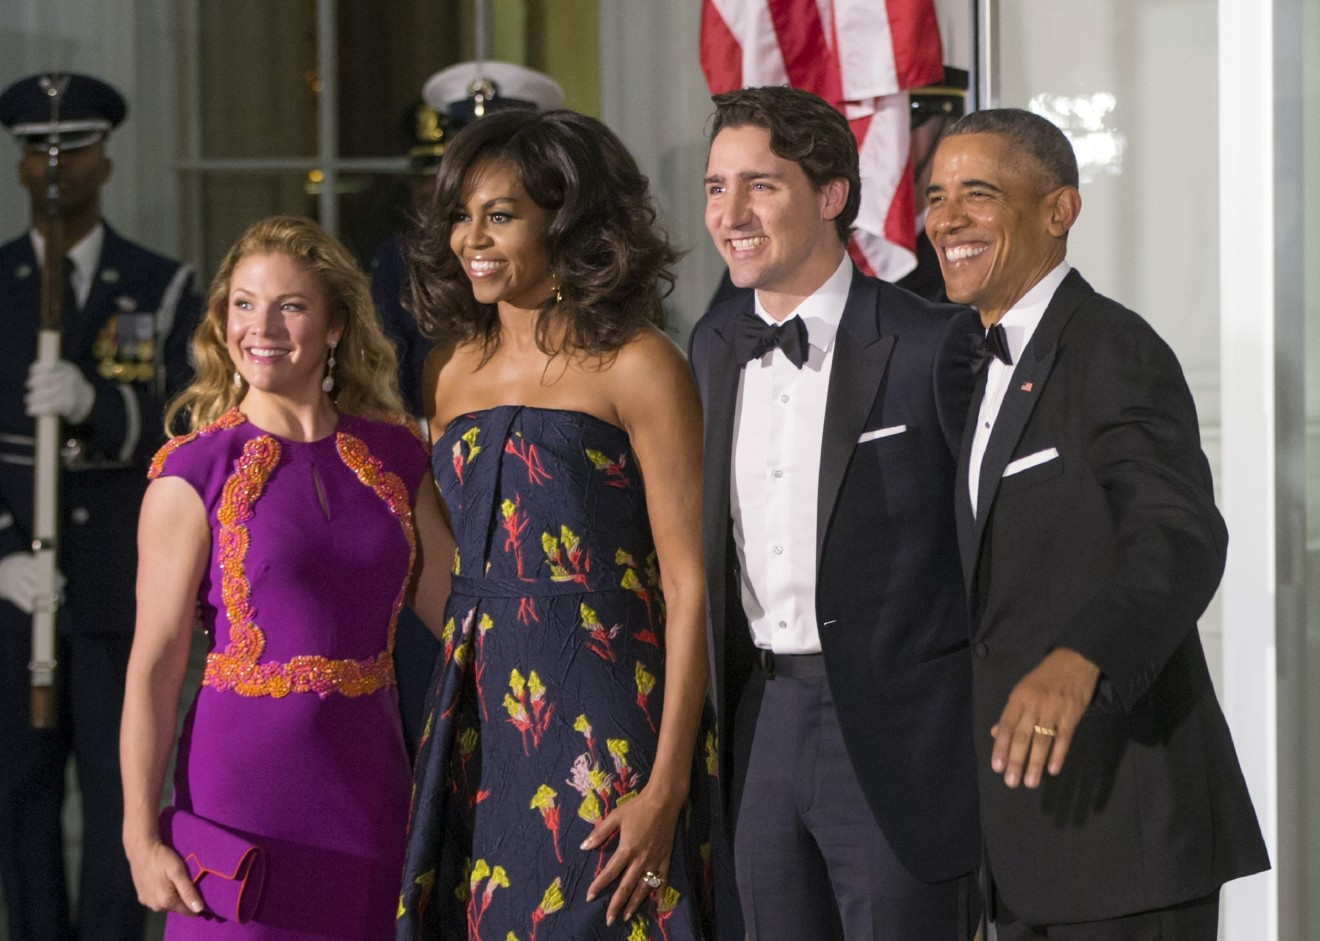 Michelle Obama Wears Jason Wu Gown For Canada State Dinner Wtte